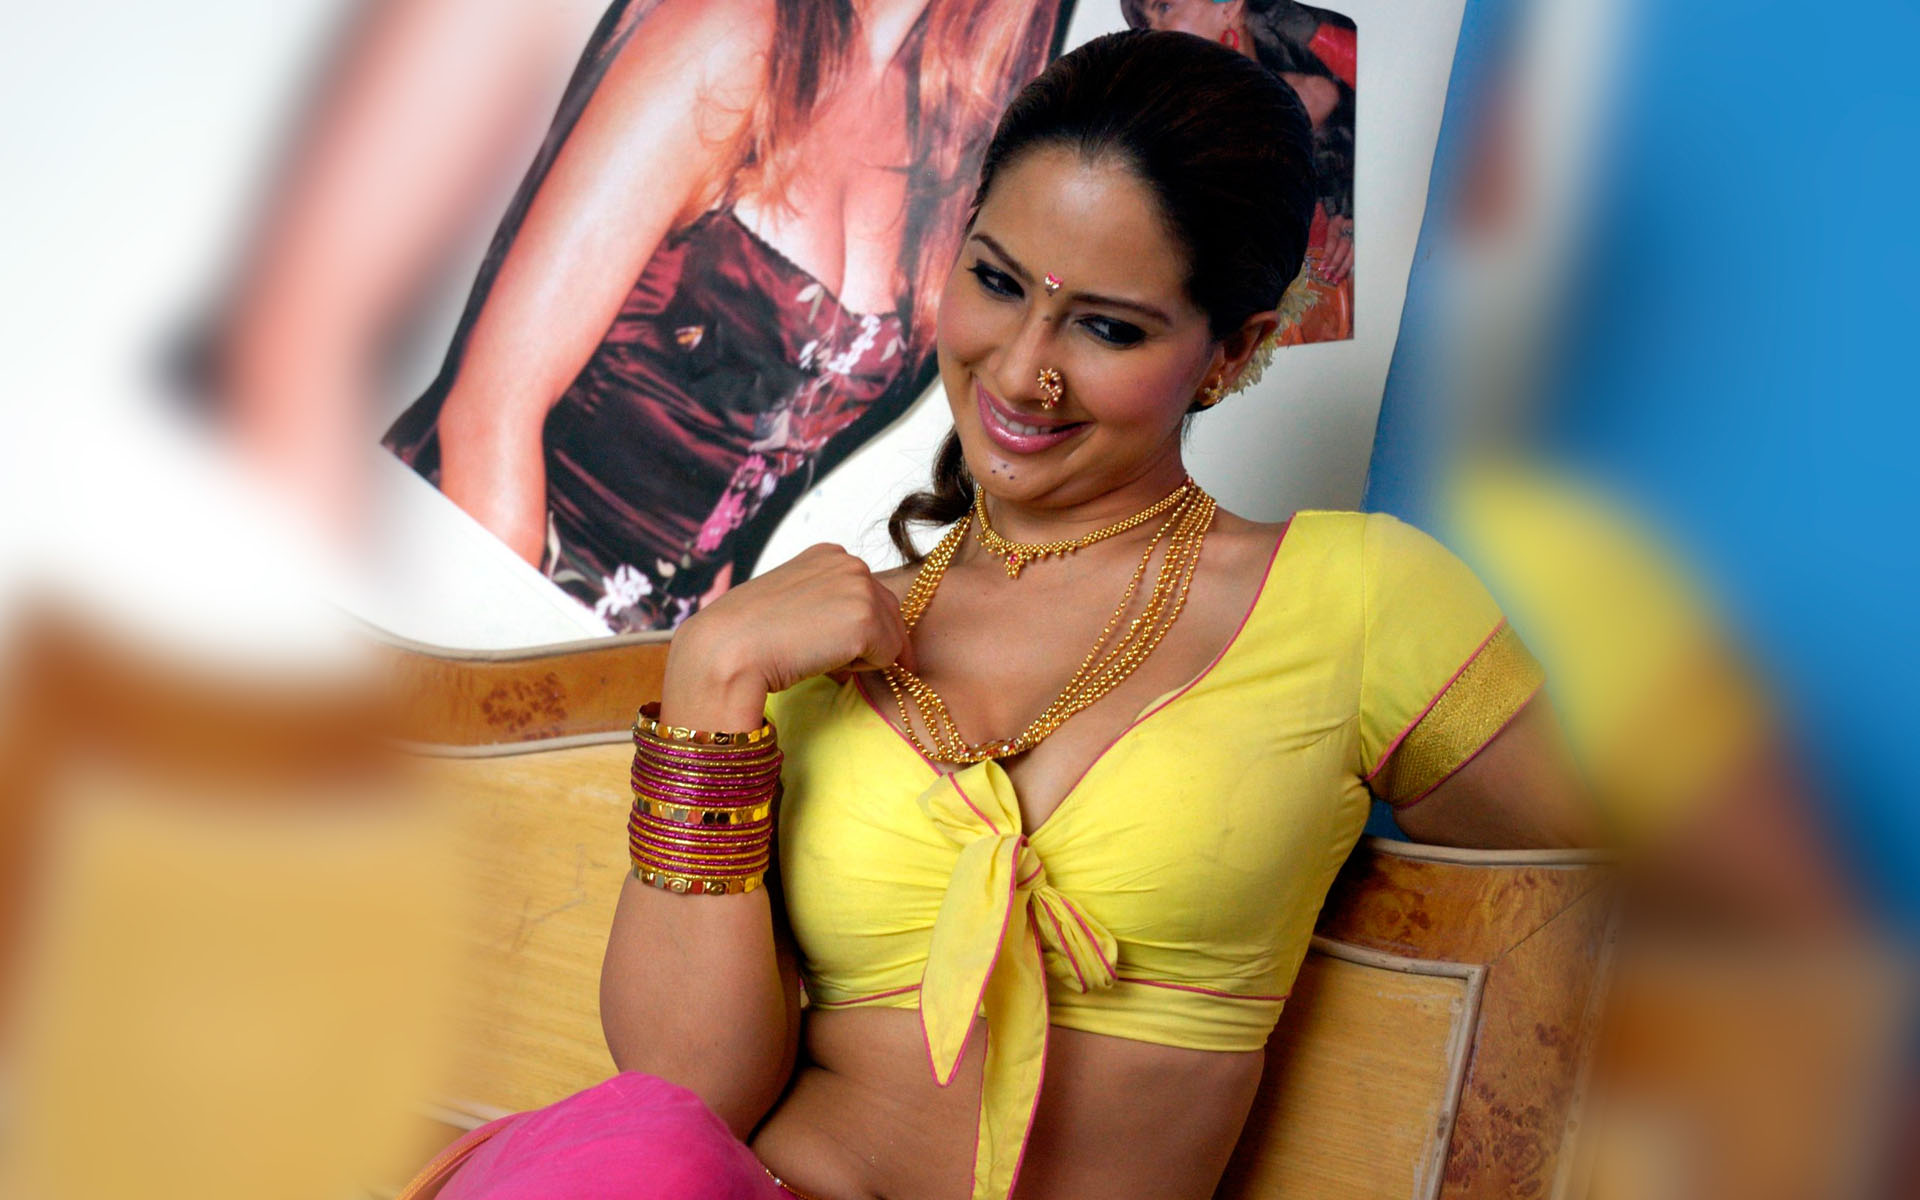 Cool 3d Wallpapers For Walls 1 Kim Sharma Hd Wallpapers Background Images Wallpaper